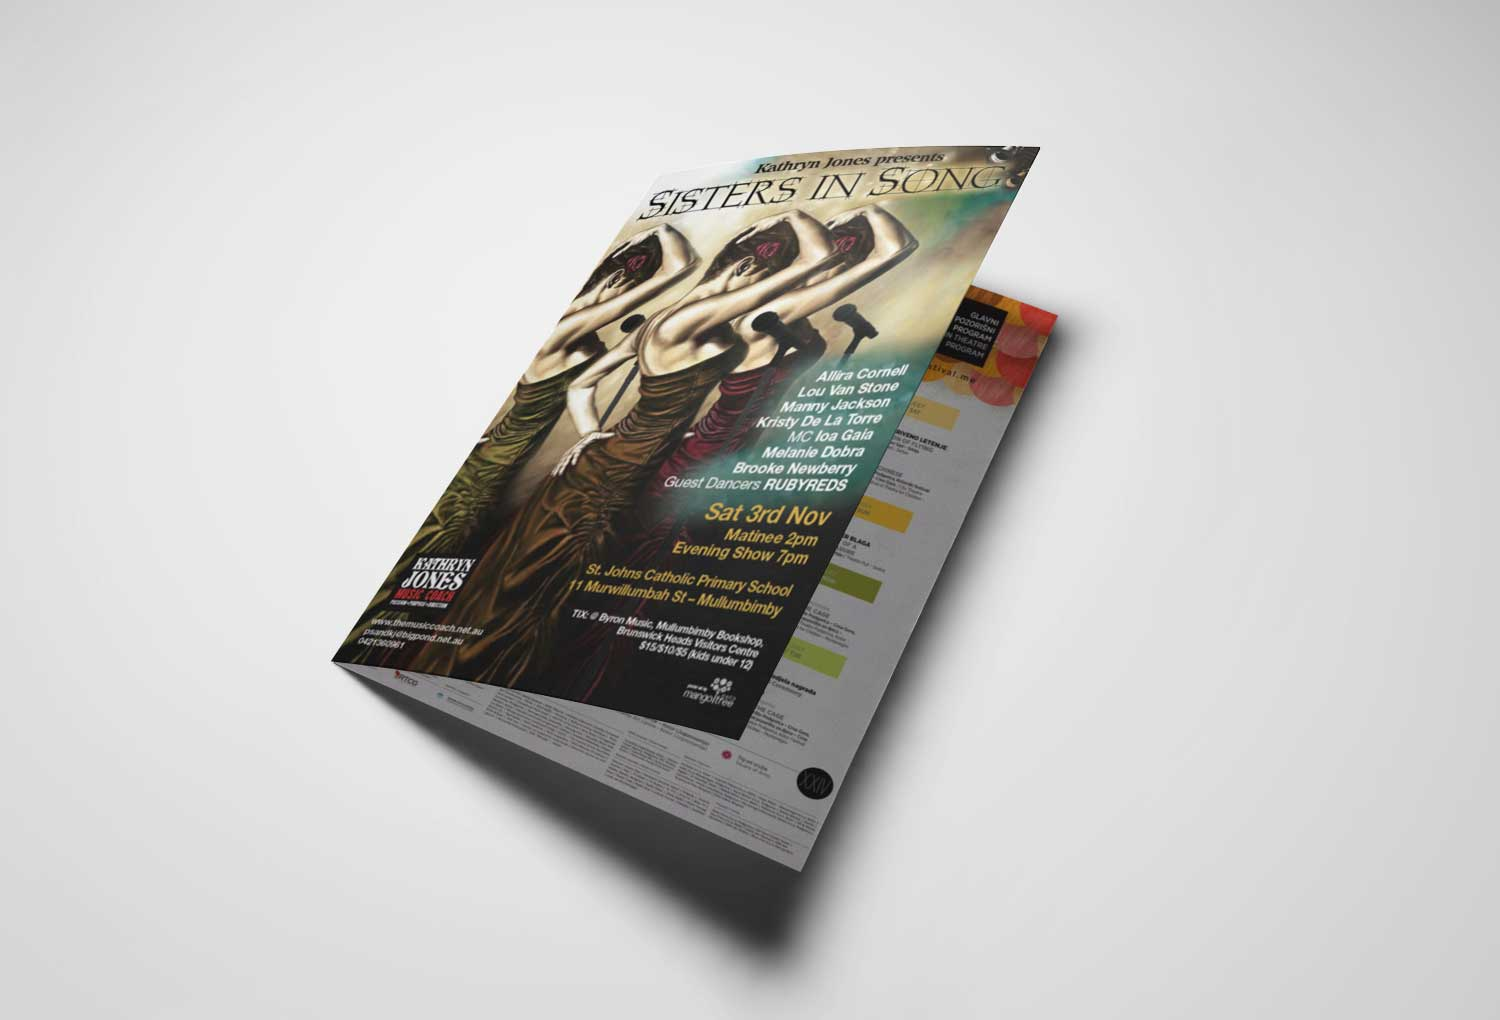 Sister Of Song Program Brochure Event Graphic Design By Mango Tree Media